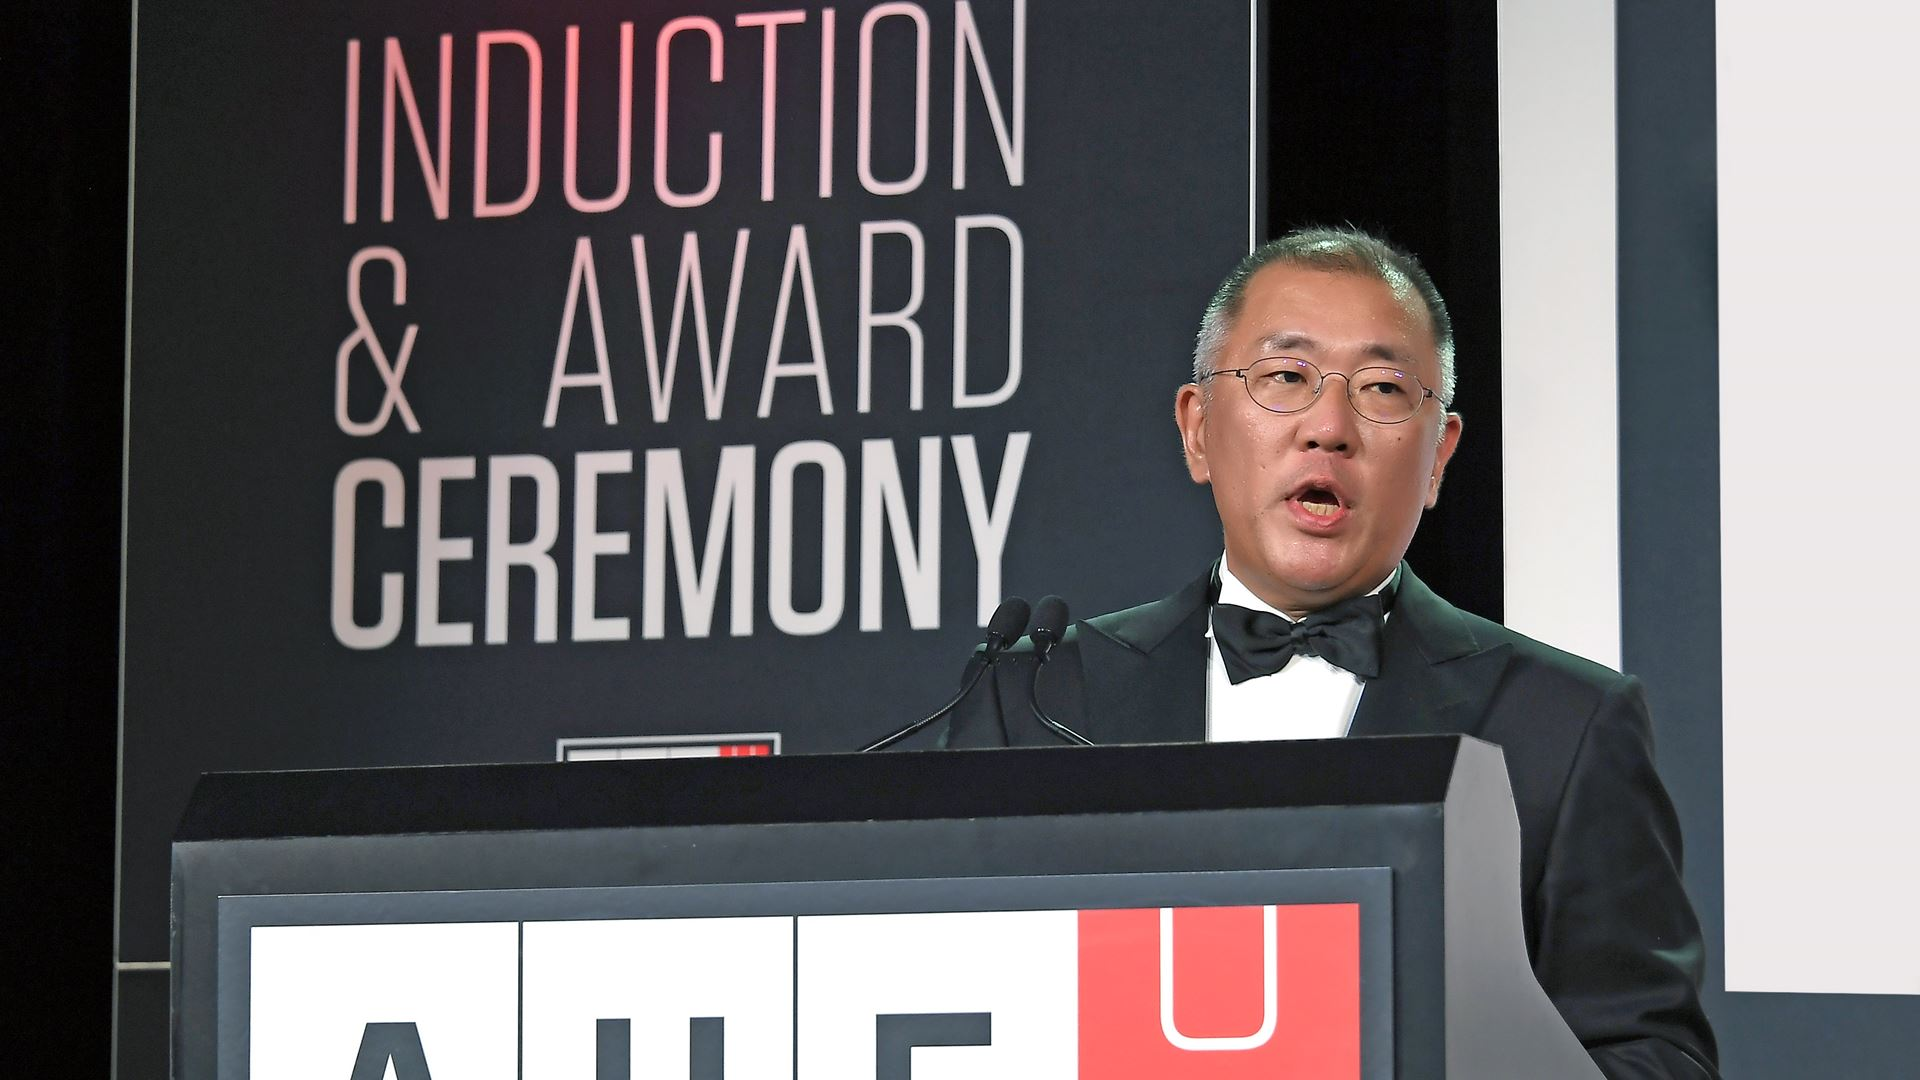 Hyundai Motor Group Honorary Chairman Mong-Koo Chung Inducted Into Automotive Hall of Fame at Official Ceremony - Image 2